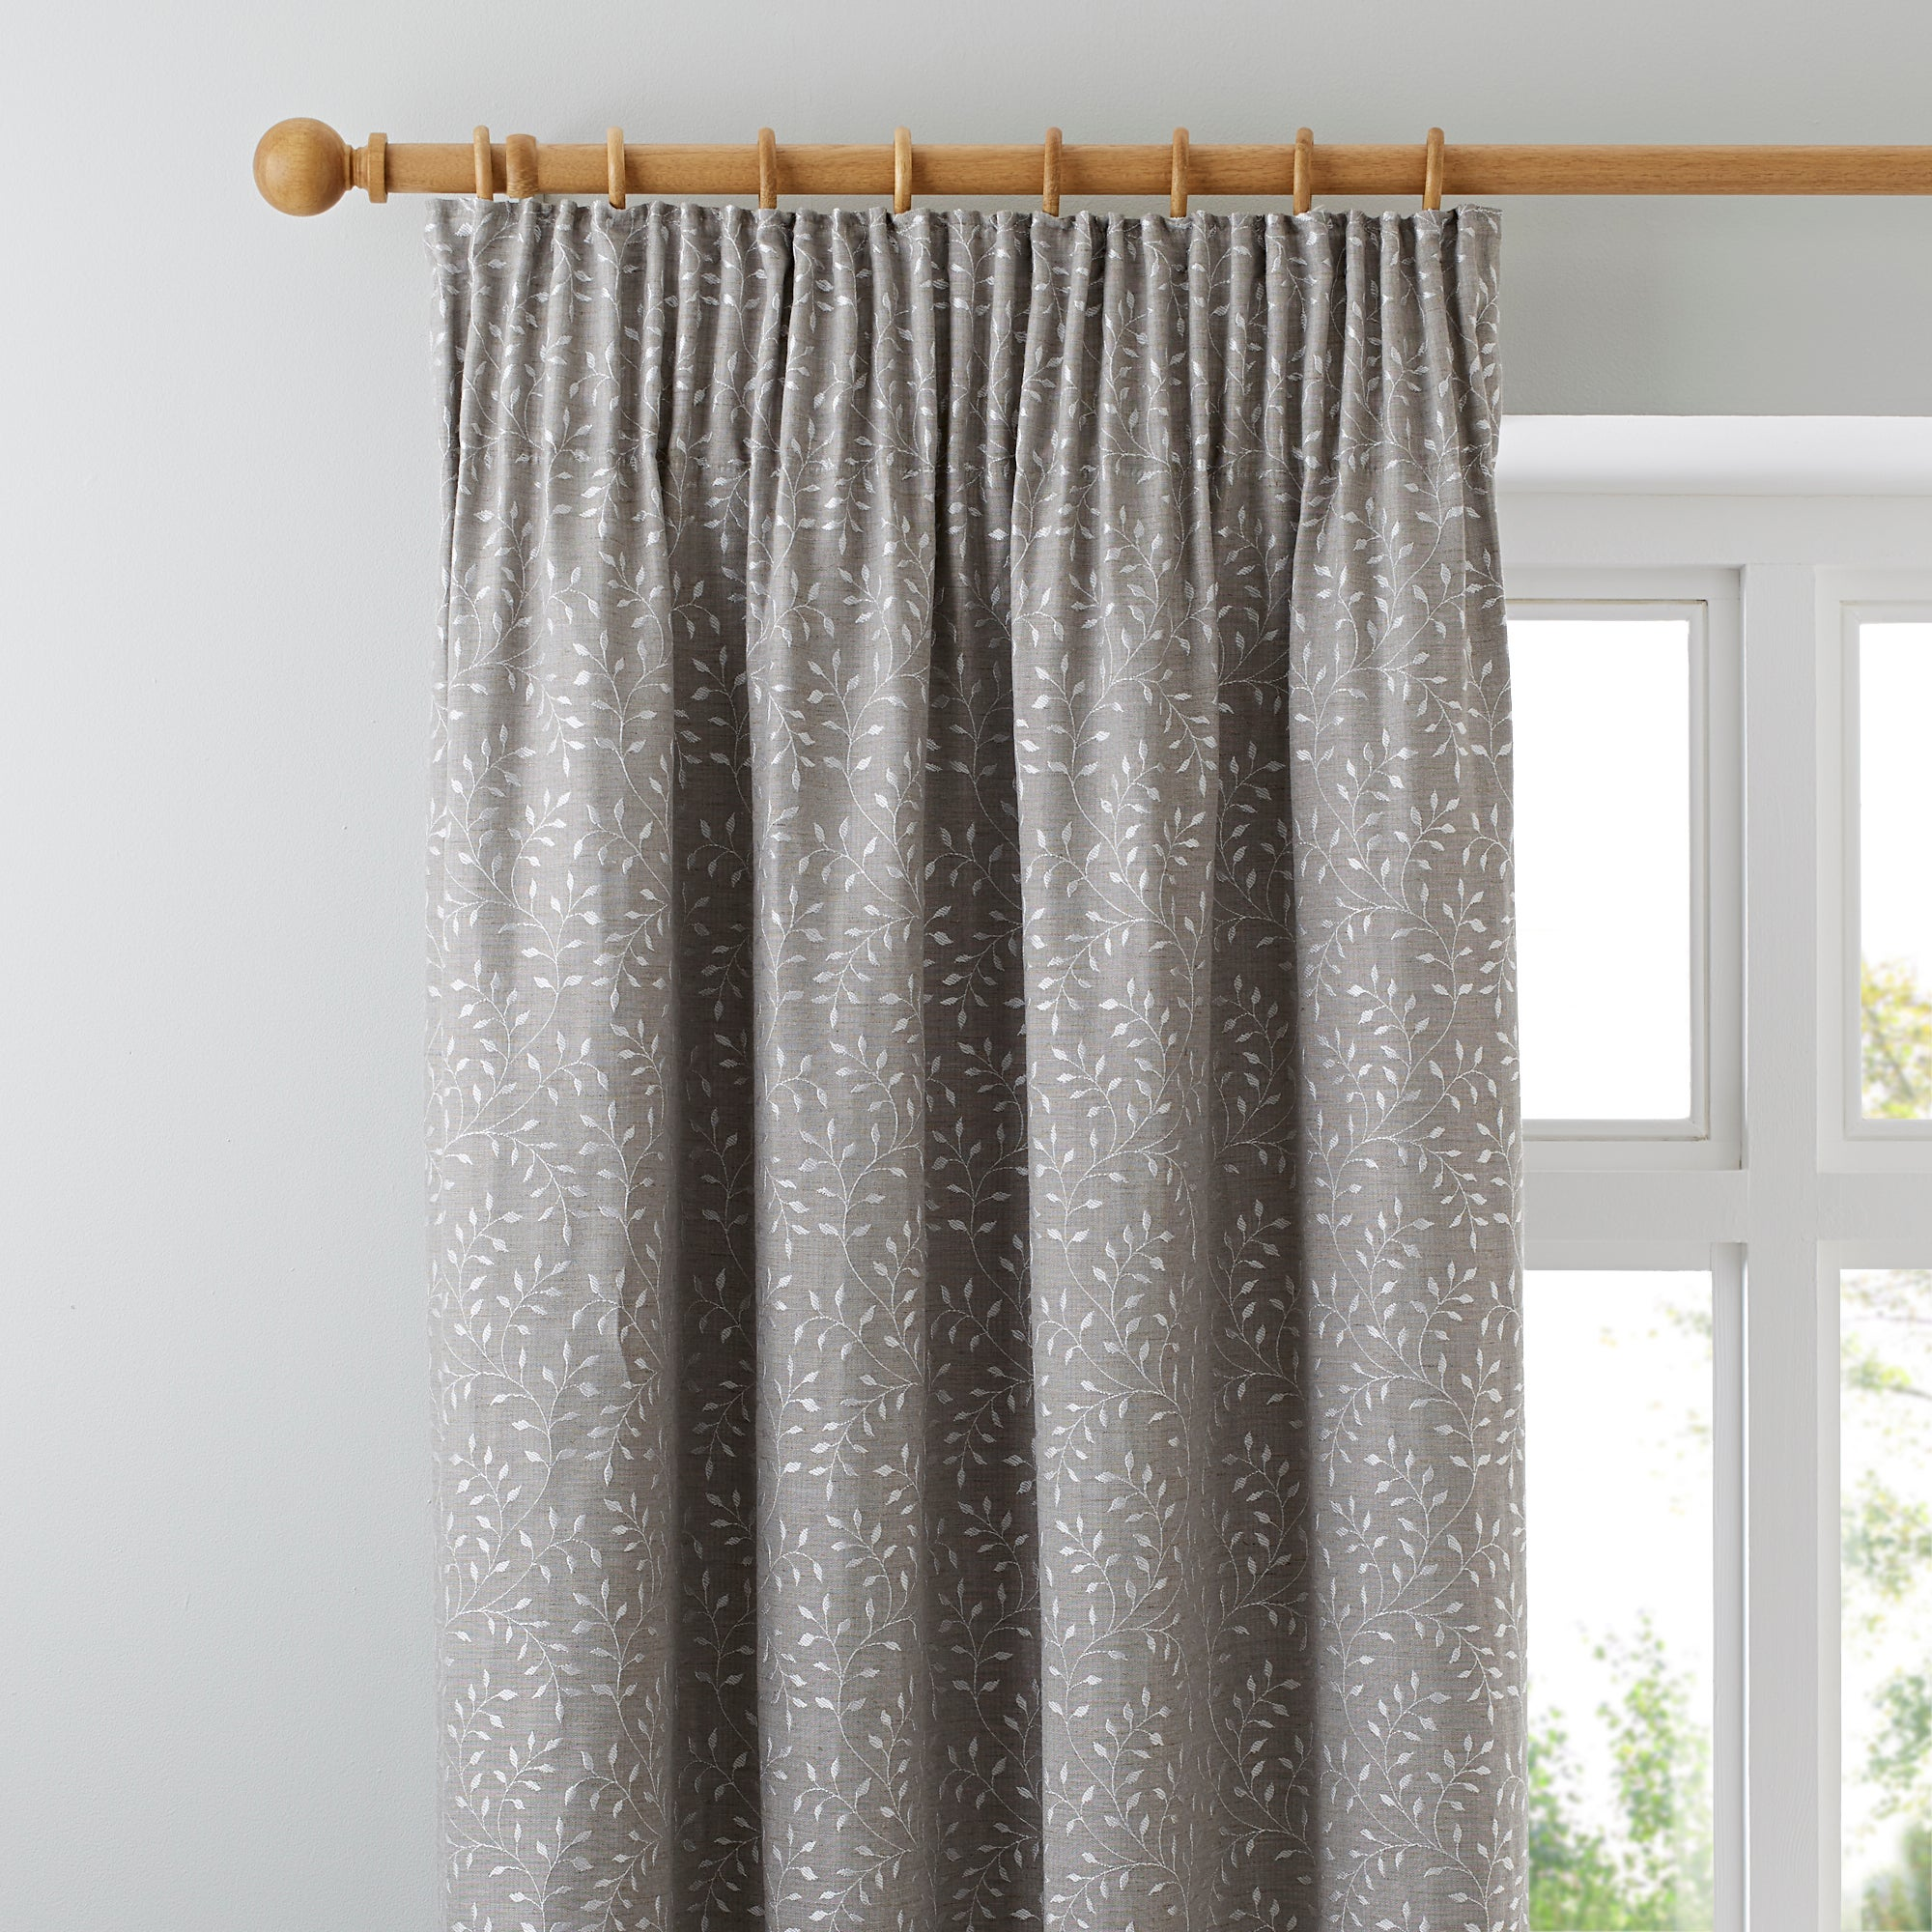 Photo of Windsor natural pencil pleat curtains natural